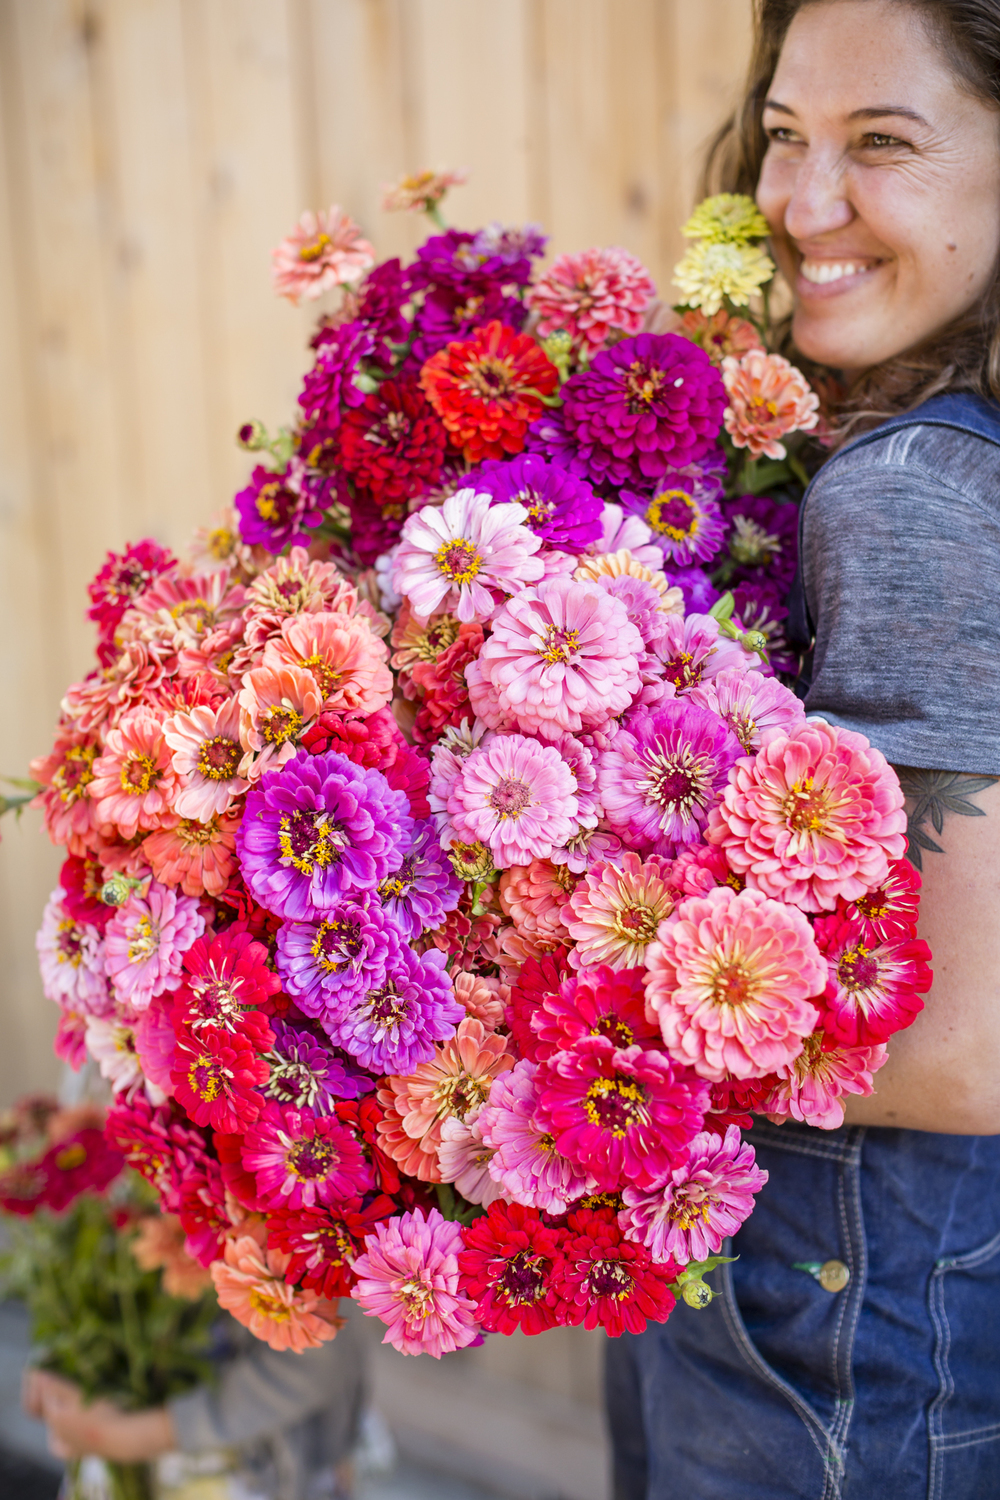 On November 6th, 2015 in Healdsburg, CA, Zoe Hitchner, flower grower at Front Porch Farm, poses for a portrait with flowers from the farm's vibrant garden which includes more than 60 varieties of annuals.  Owned by Mimi and Peter Buckley, the Russian River runs through the valley of their 110-acre biodynamic farm which focuses on biodiversity and the health and vitality of the land.  The farm also grows a variety of fruits and vegetables, as well as heirloom wheat and wine grapes. 